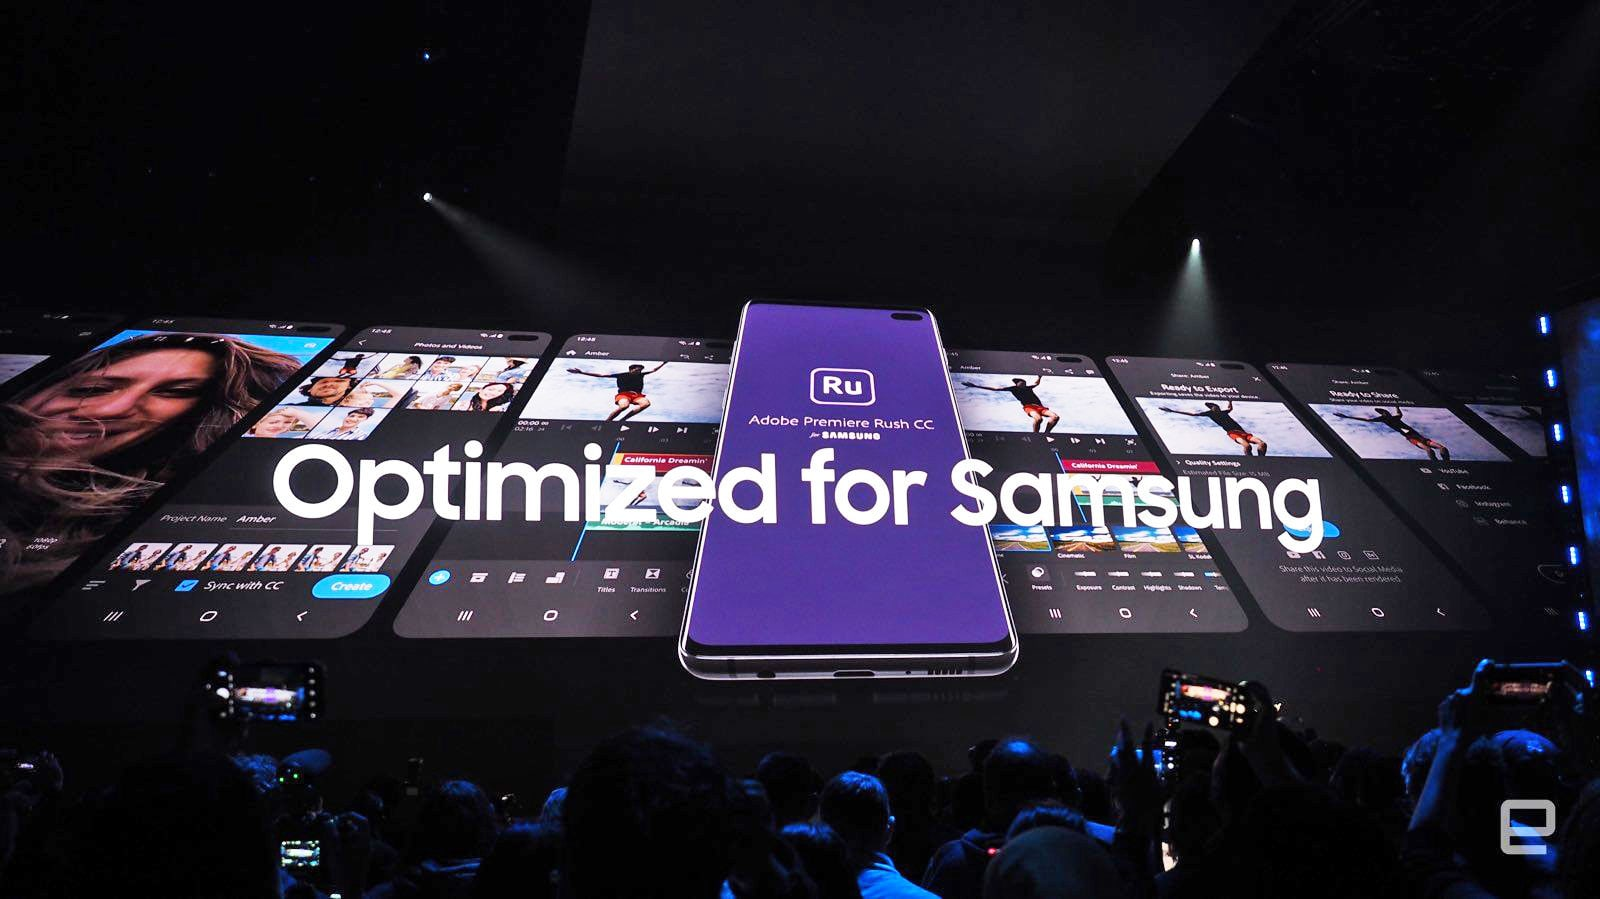 The Galaxy S10 will get its own version of Adobe Premiere Rush